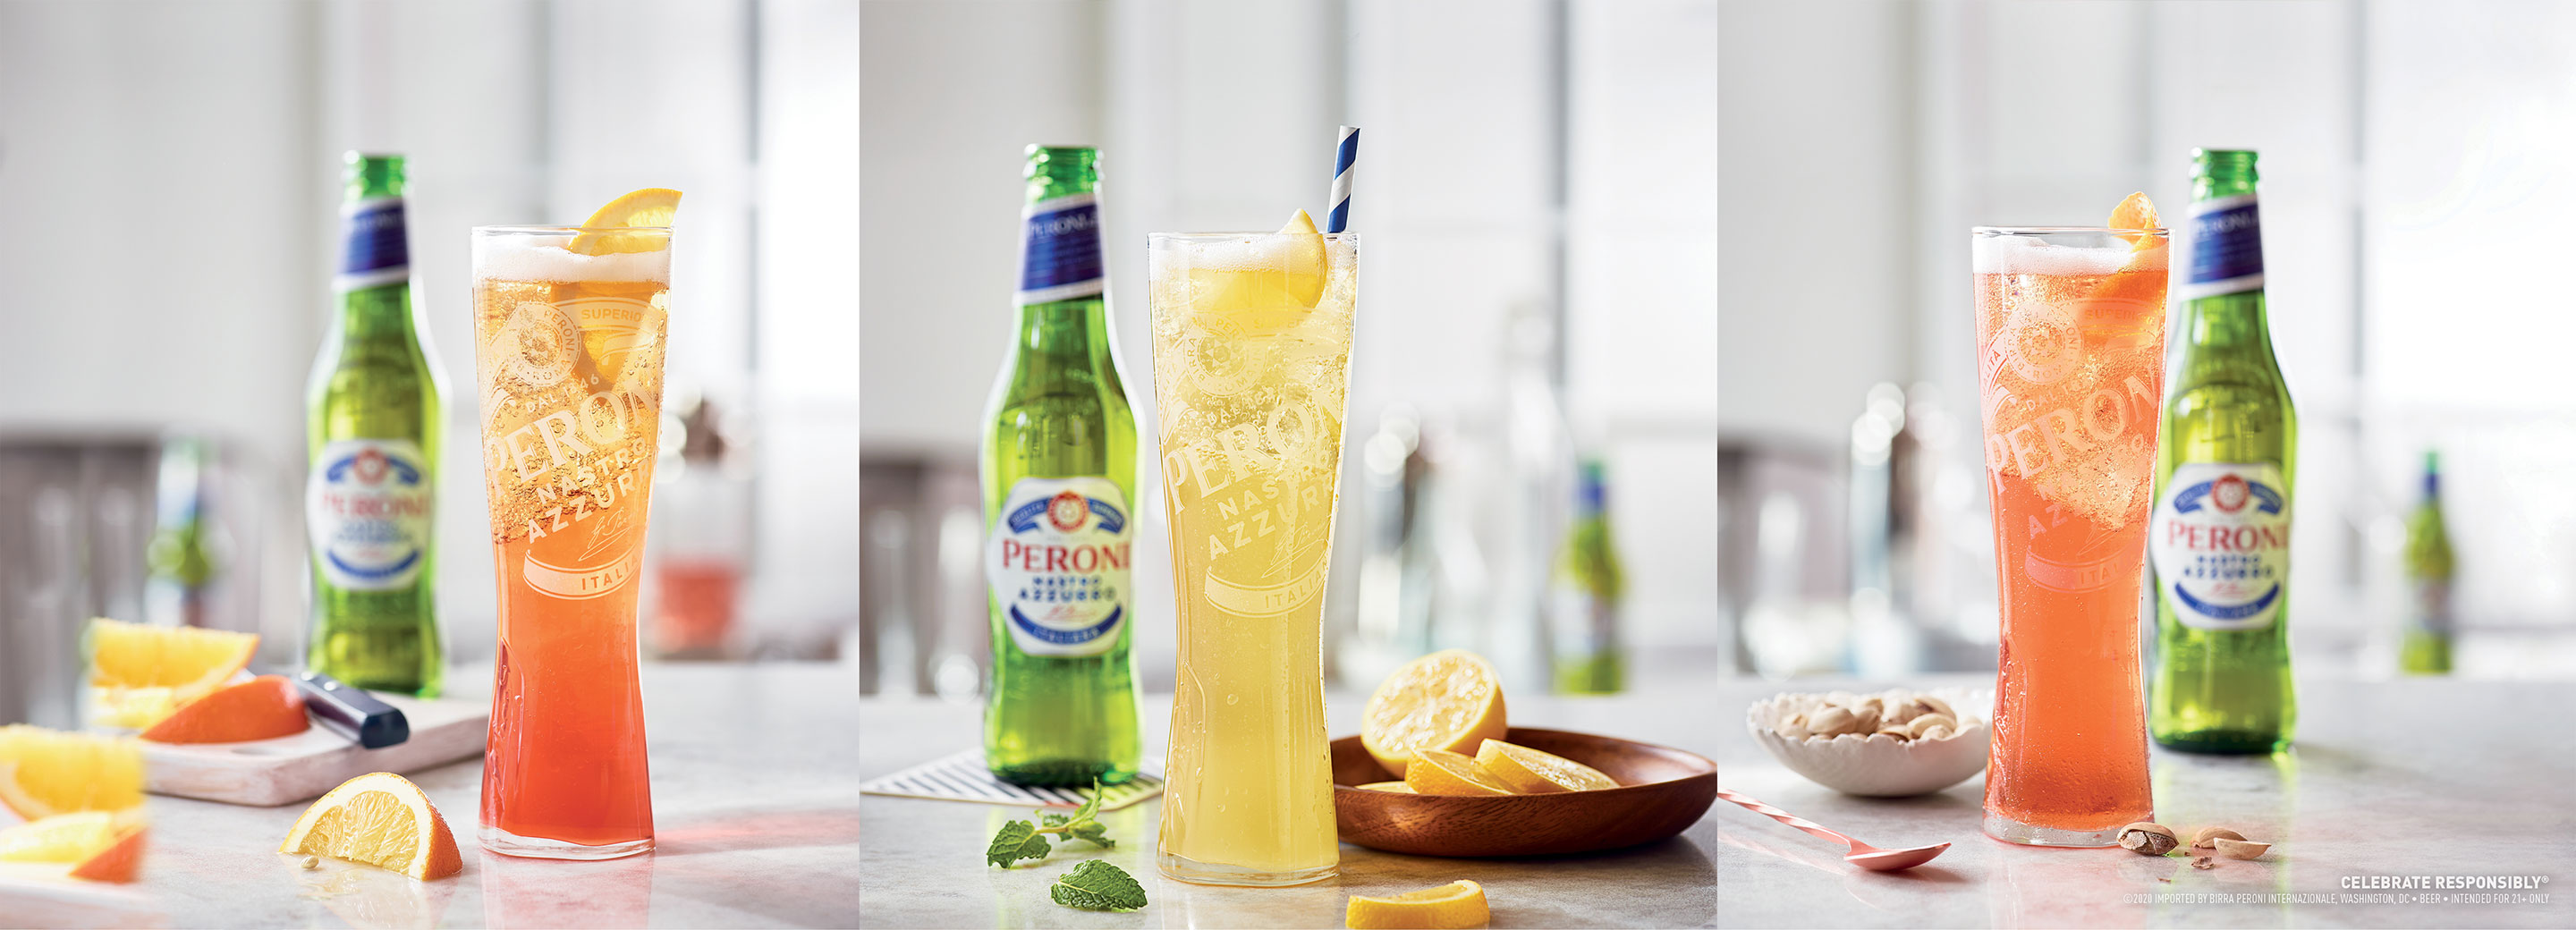 Peroni Italian Cocktail 3 Ways